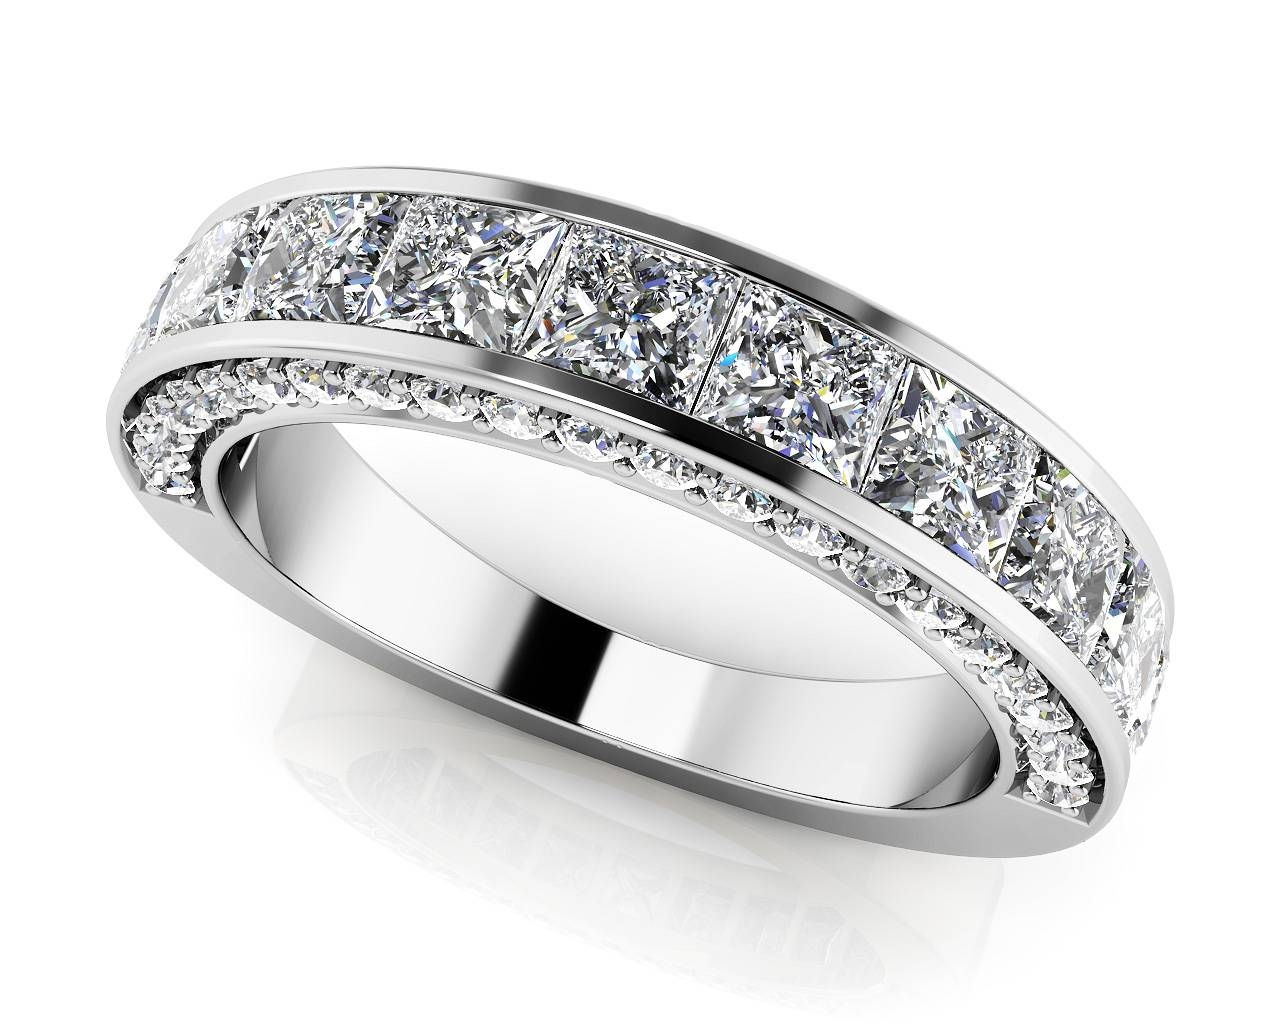 Wedding Rings : Matching Anniversary Bands Past Present Future In 2017 5 Stone Anniversary Rings (Gallery 21 of 25)